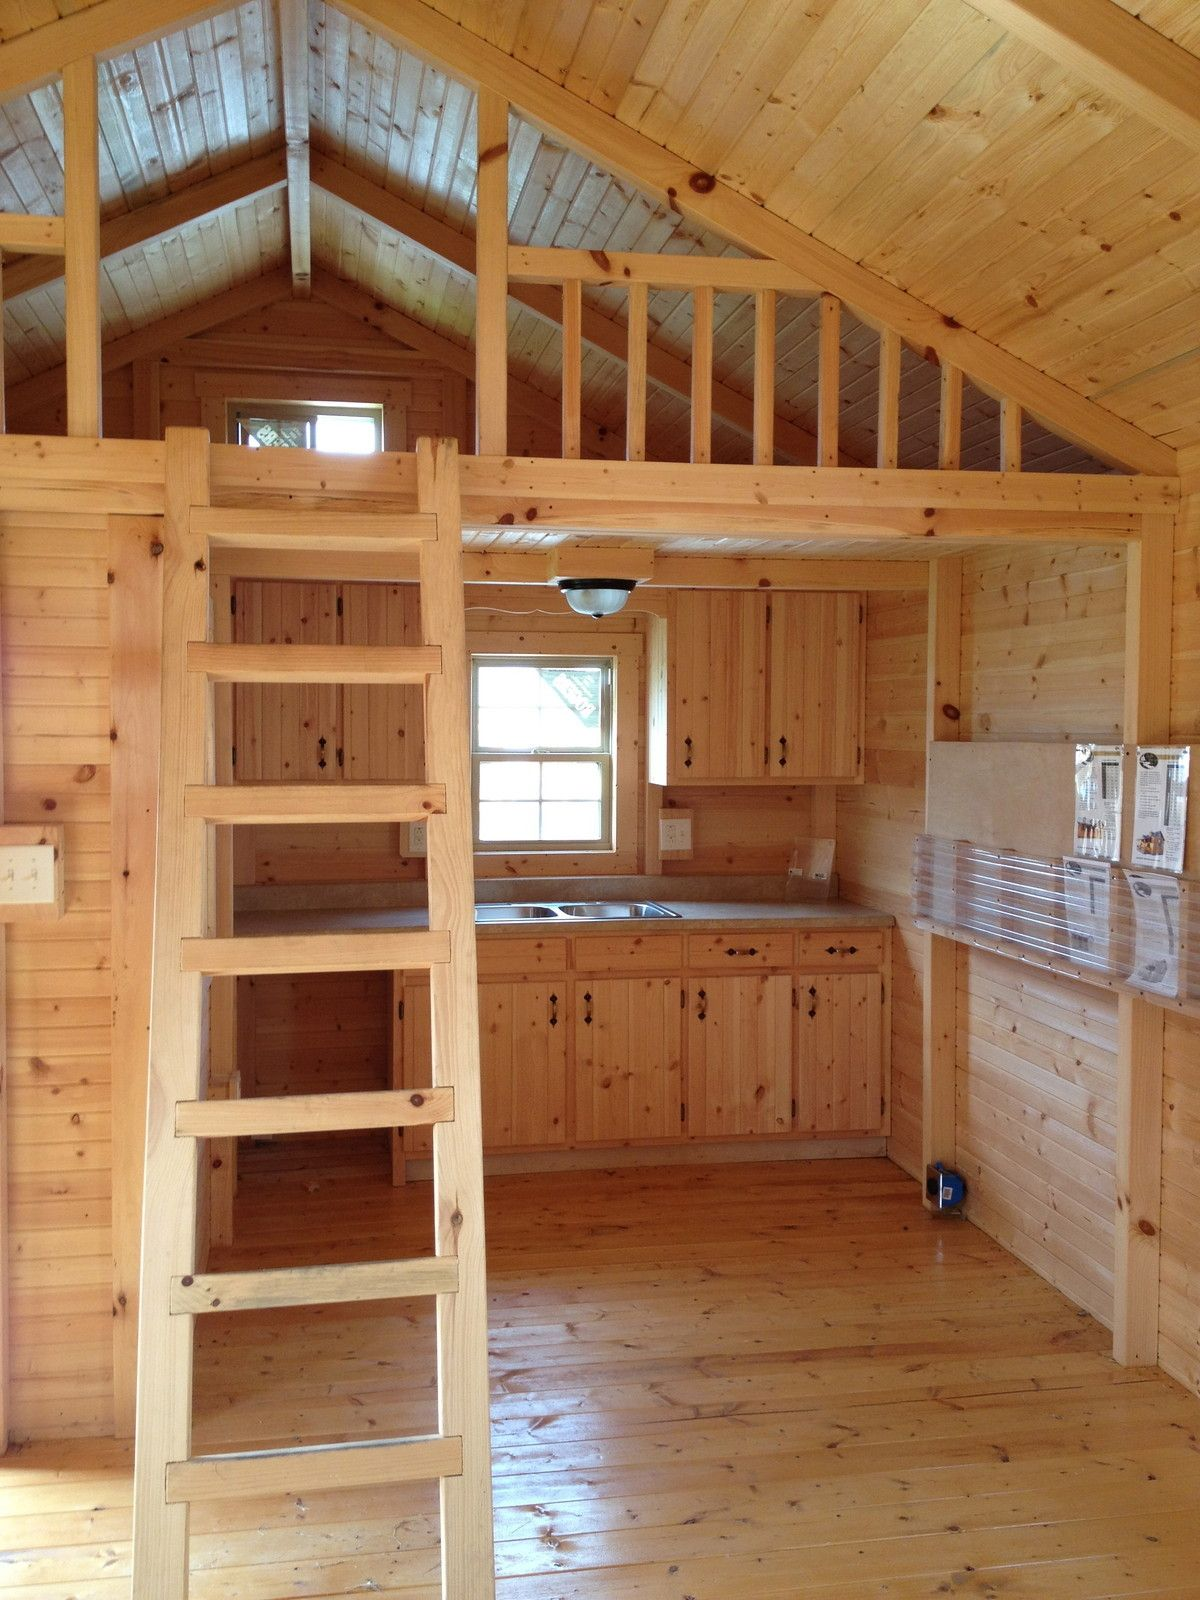 Tiny house ebay 14x24 cabin kit tiny homes pinterest for Little house